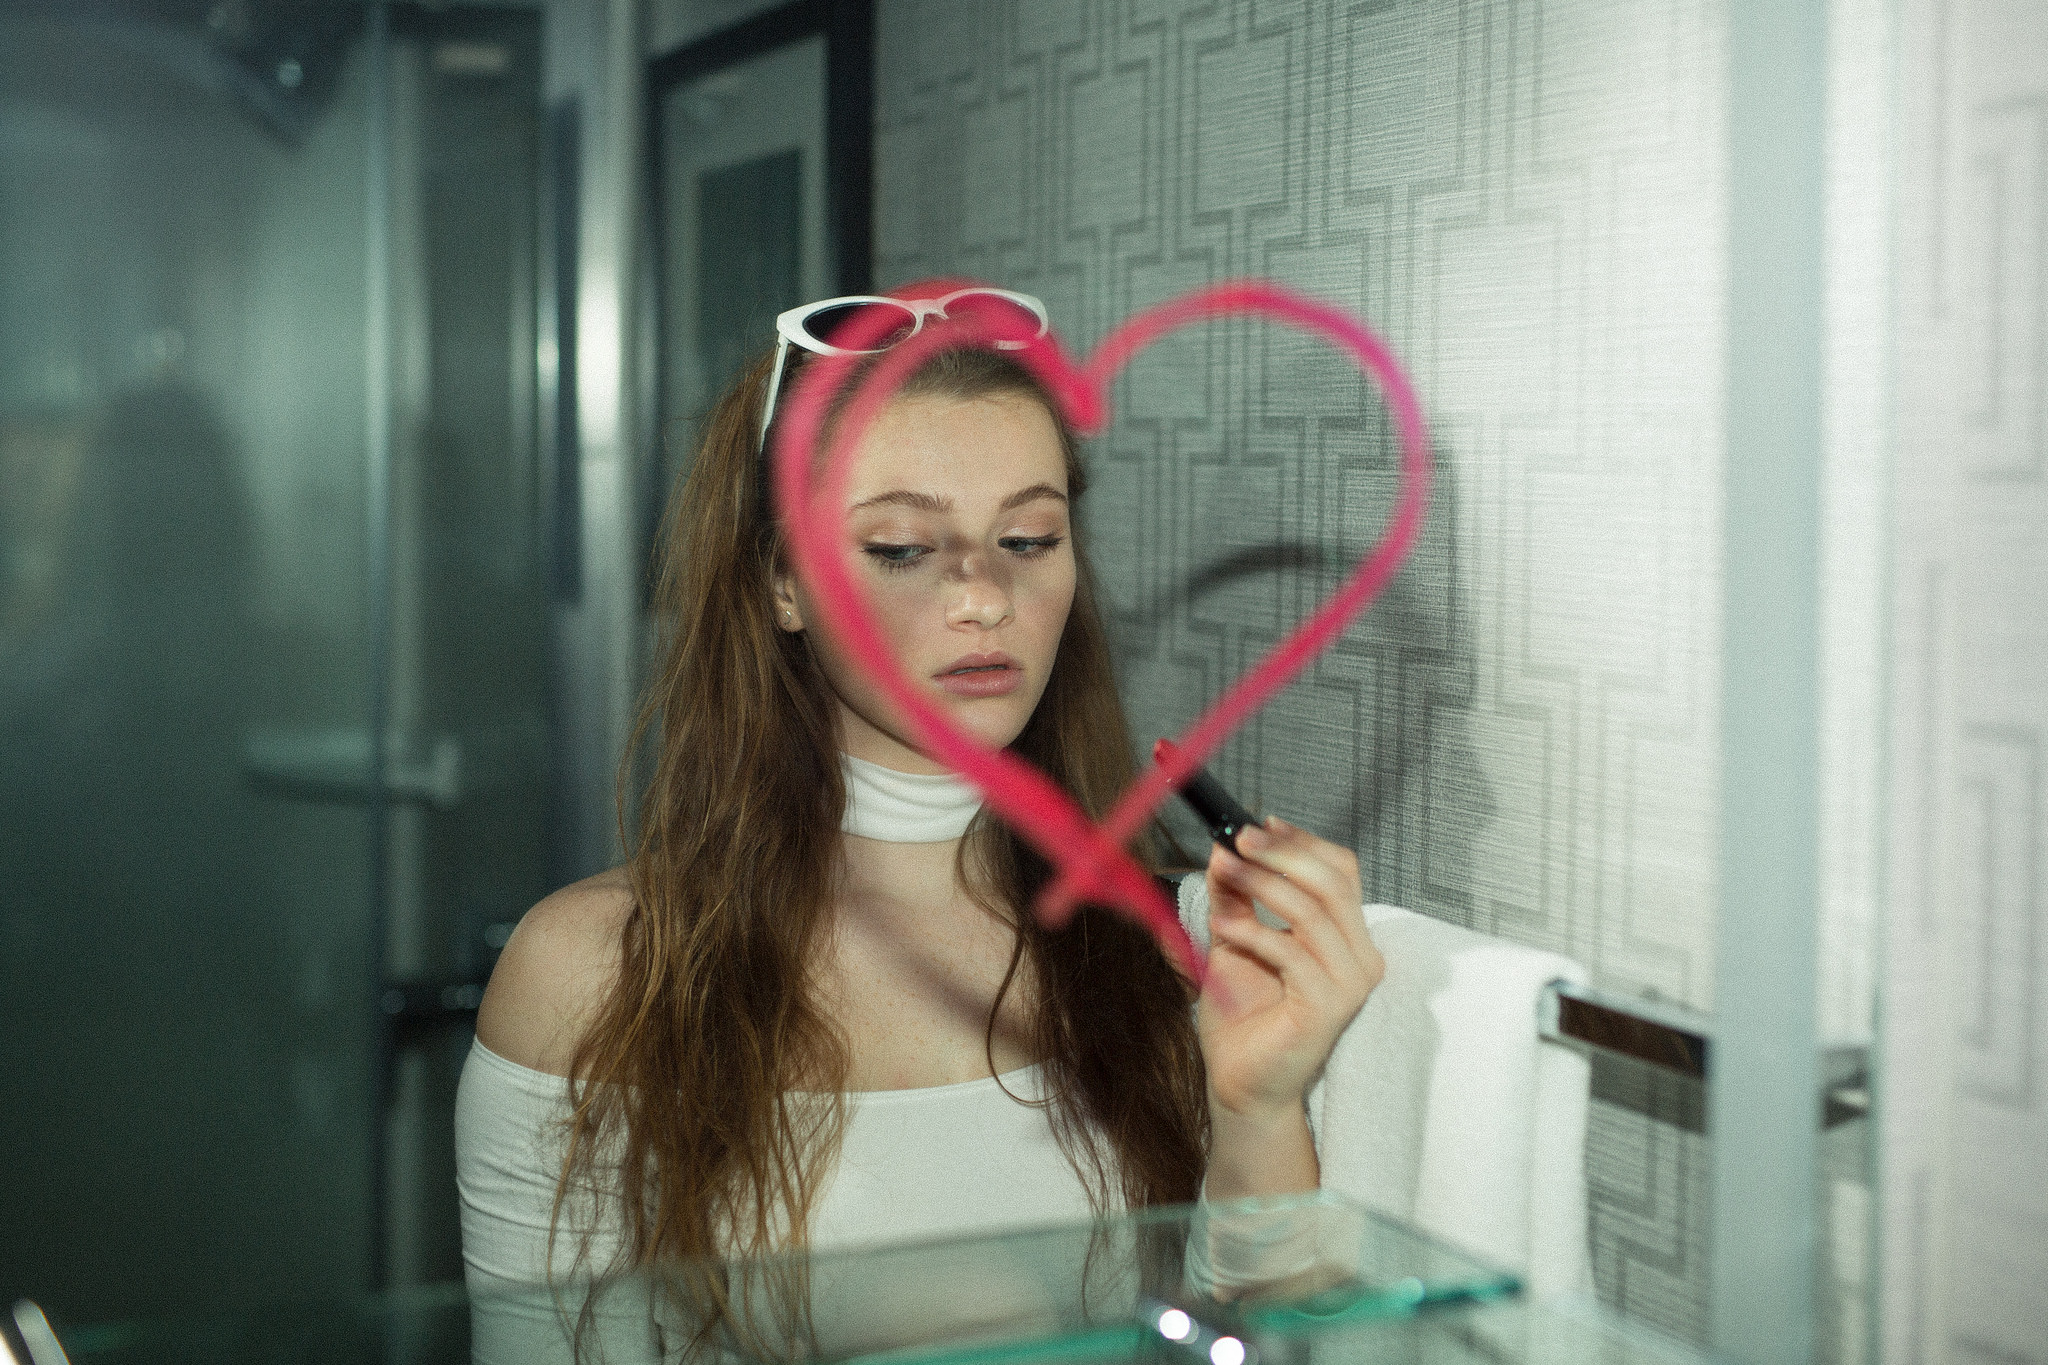 pink lipstick on mirror with girl's reflection